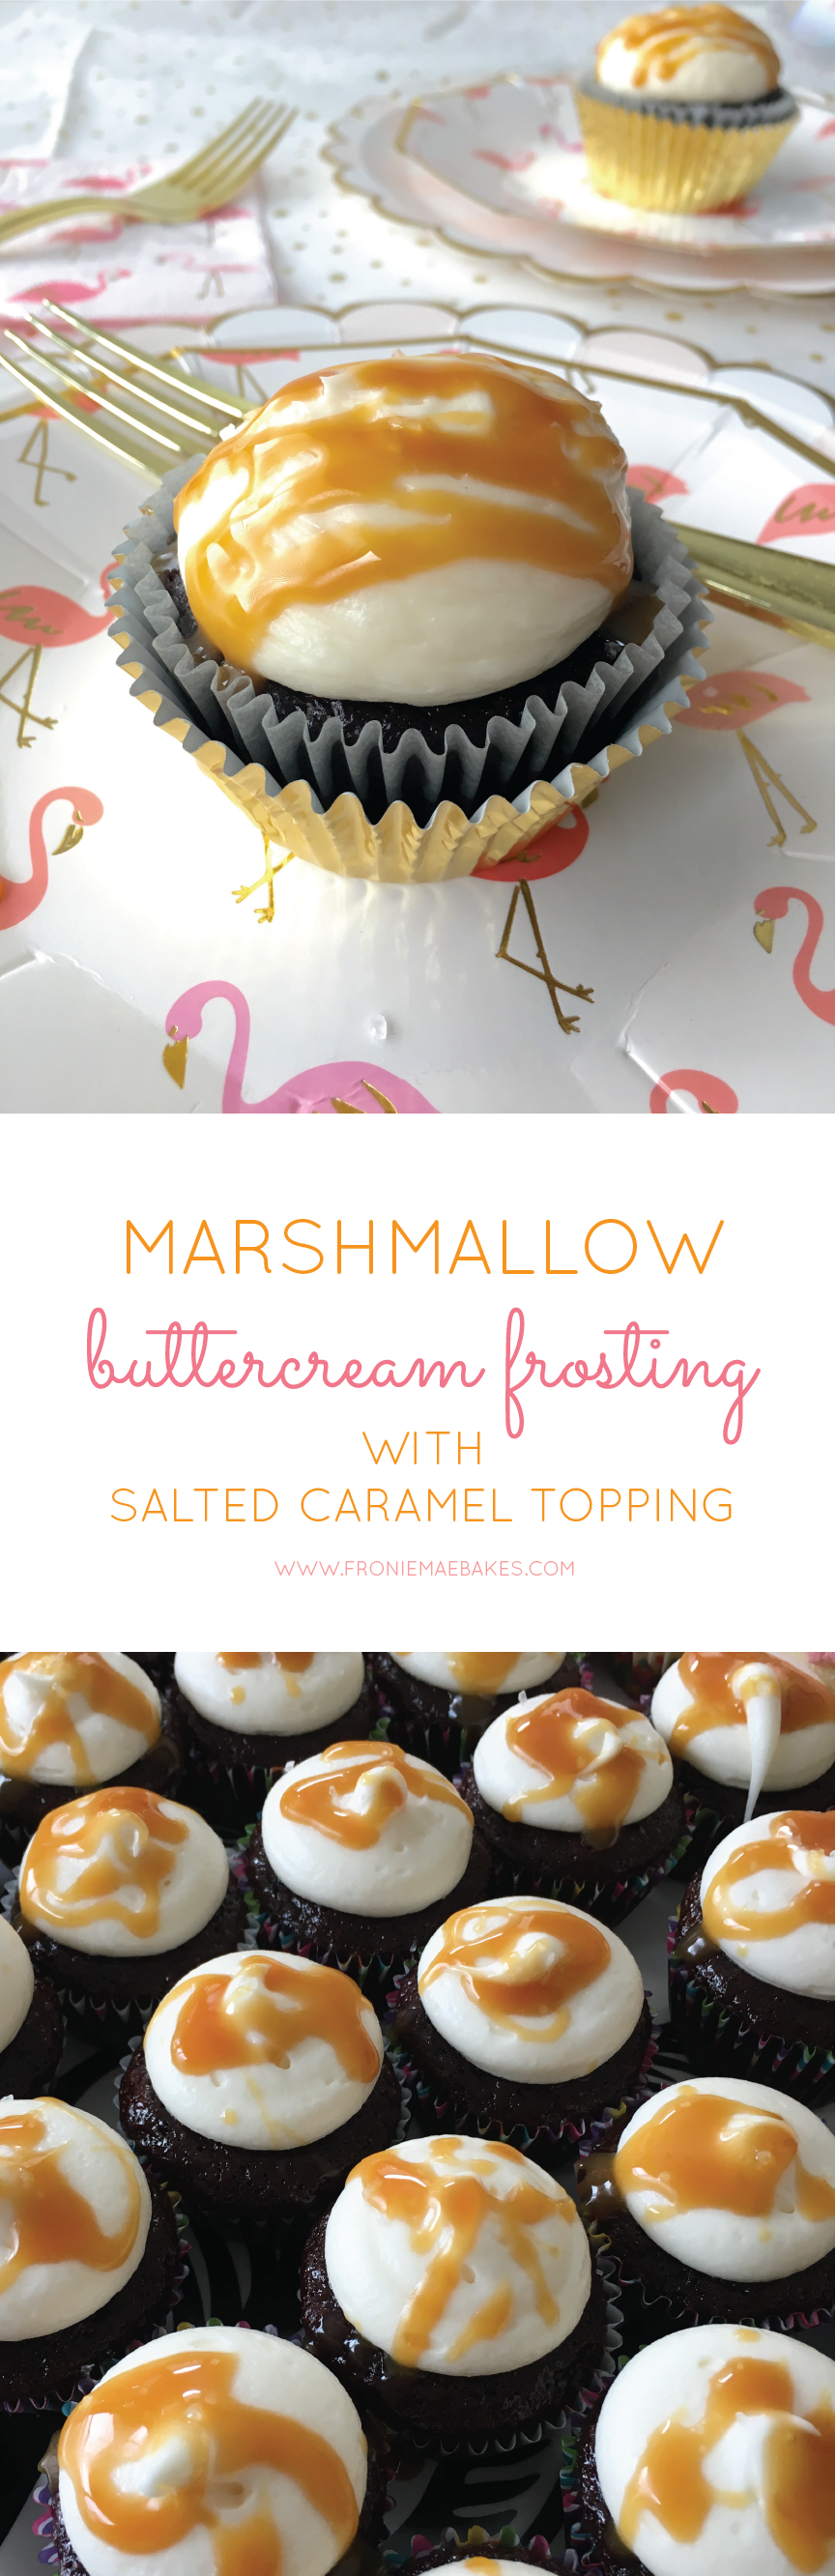 Make these mouth watering Marshmallow Buttercream with Salted Caramel Topped Chocolate Cupcakes today! Recipe can be found on www.FronieMaeBakes.com